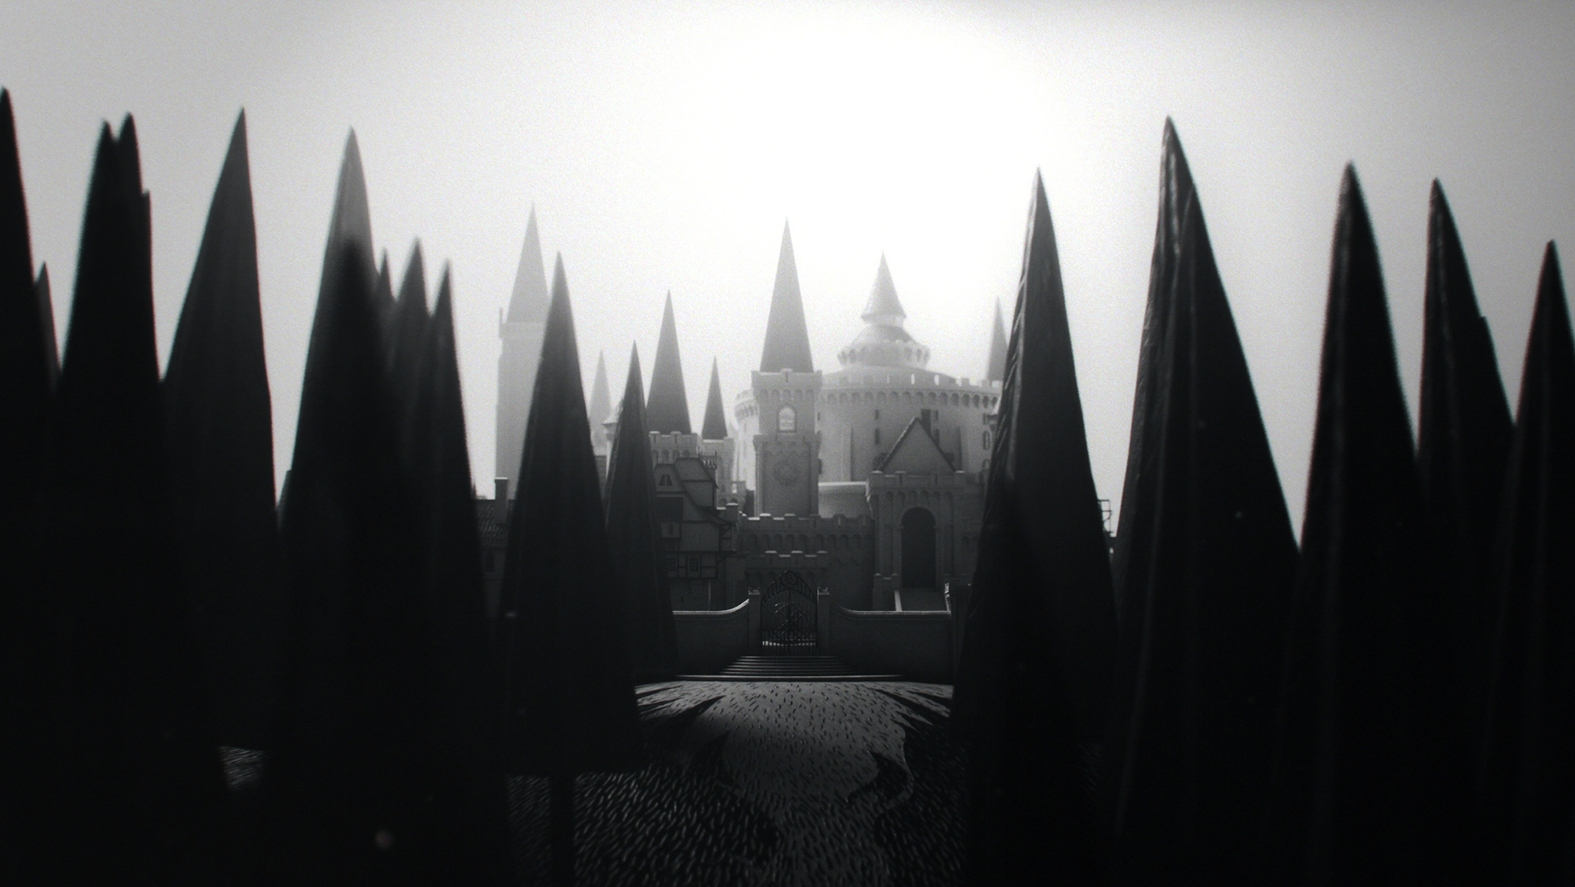 Image of Ilvermorny school of witchcraft and wizardry